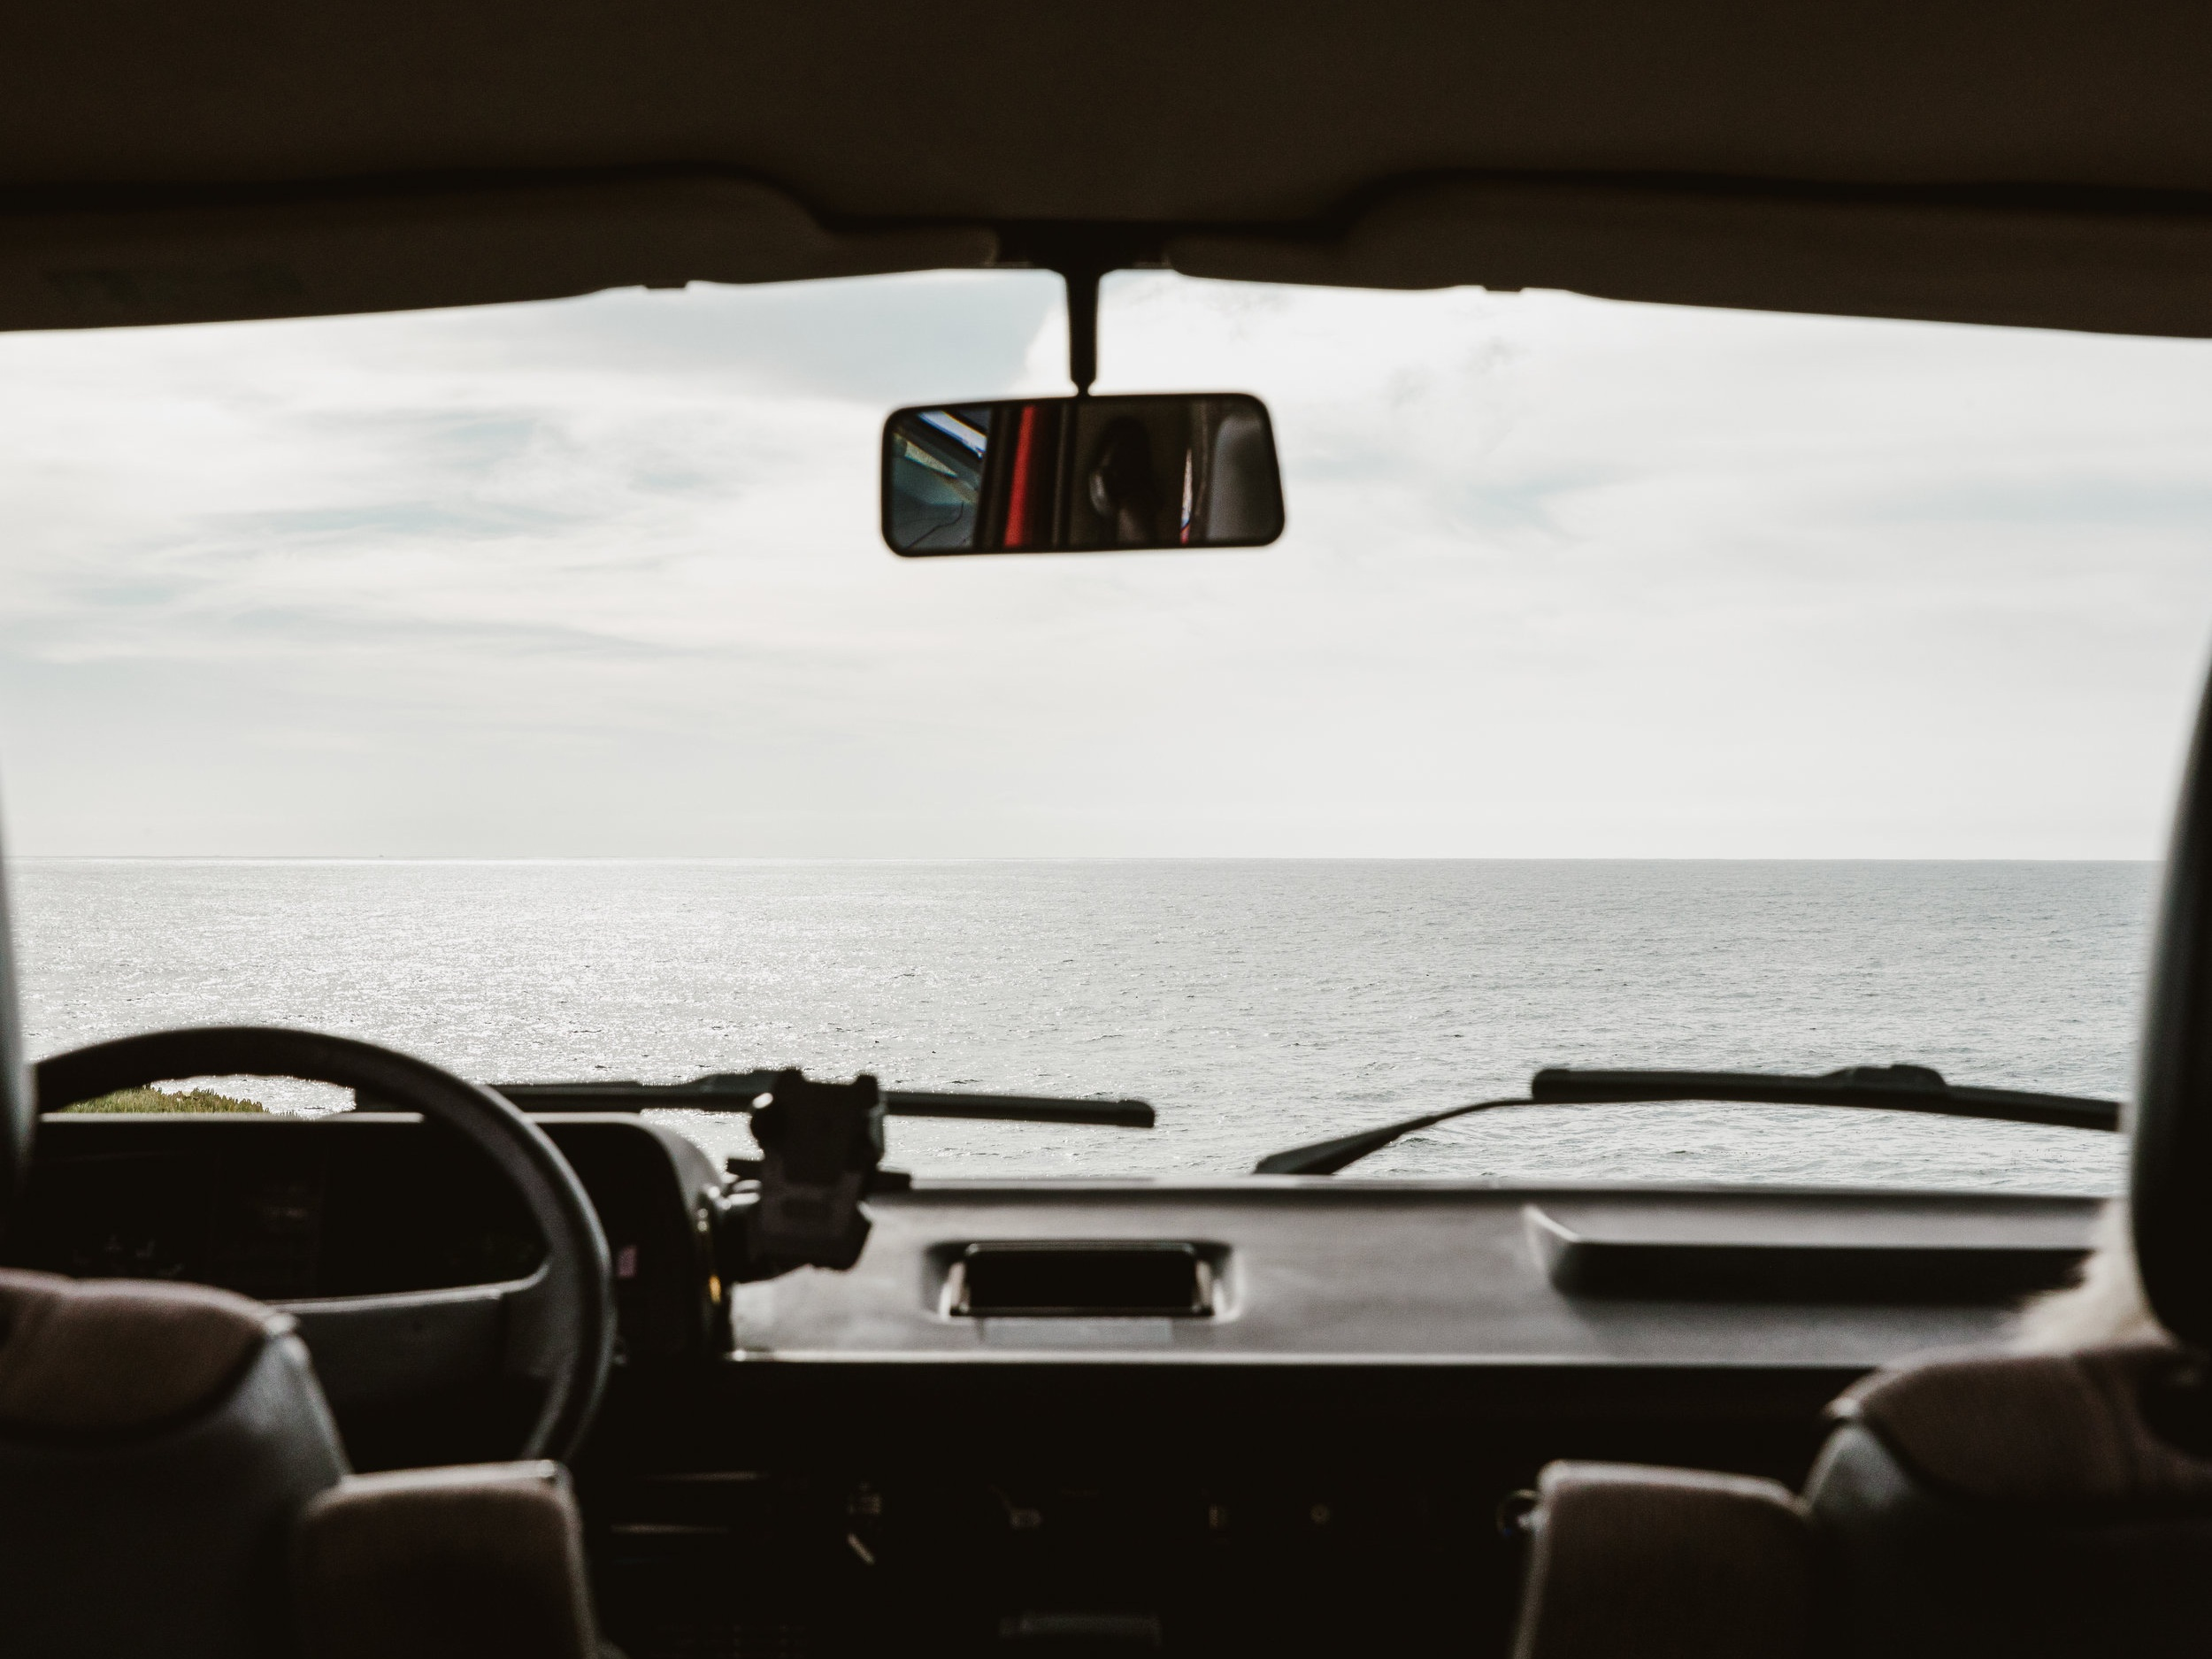 About us - We are Westfalia aficionados who love to share our passion with travelers.